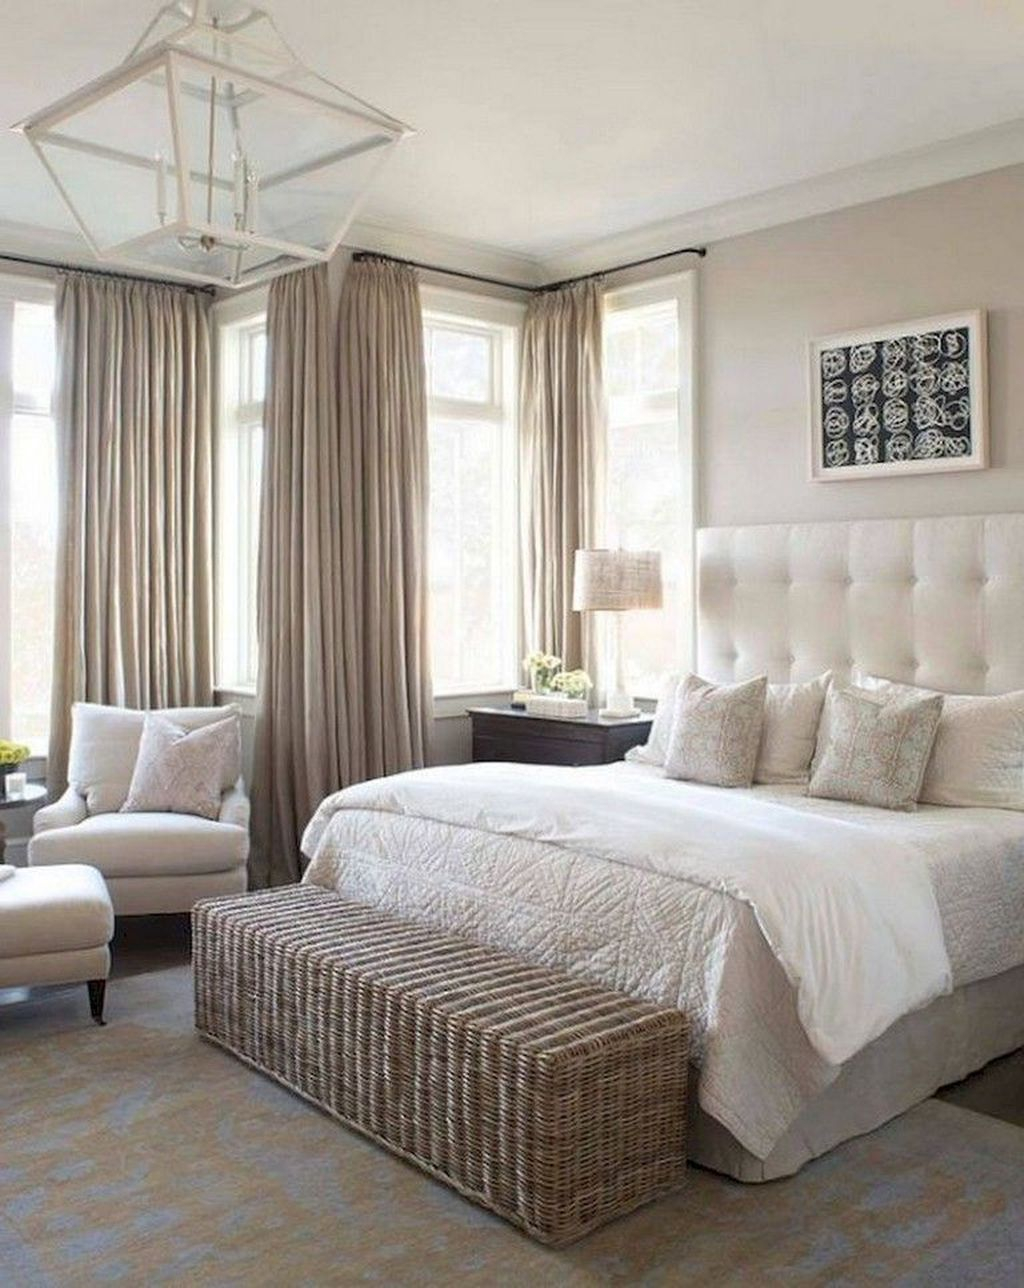 Extraordinary Master Bedroom Design Ideas You Have To Try 15